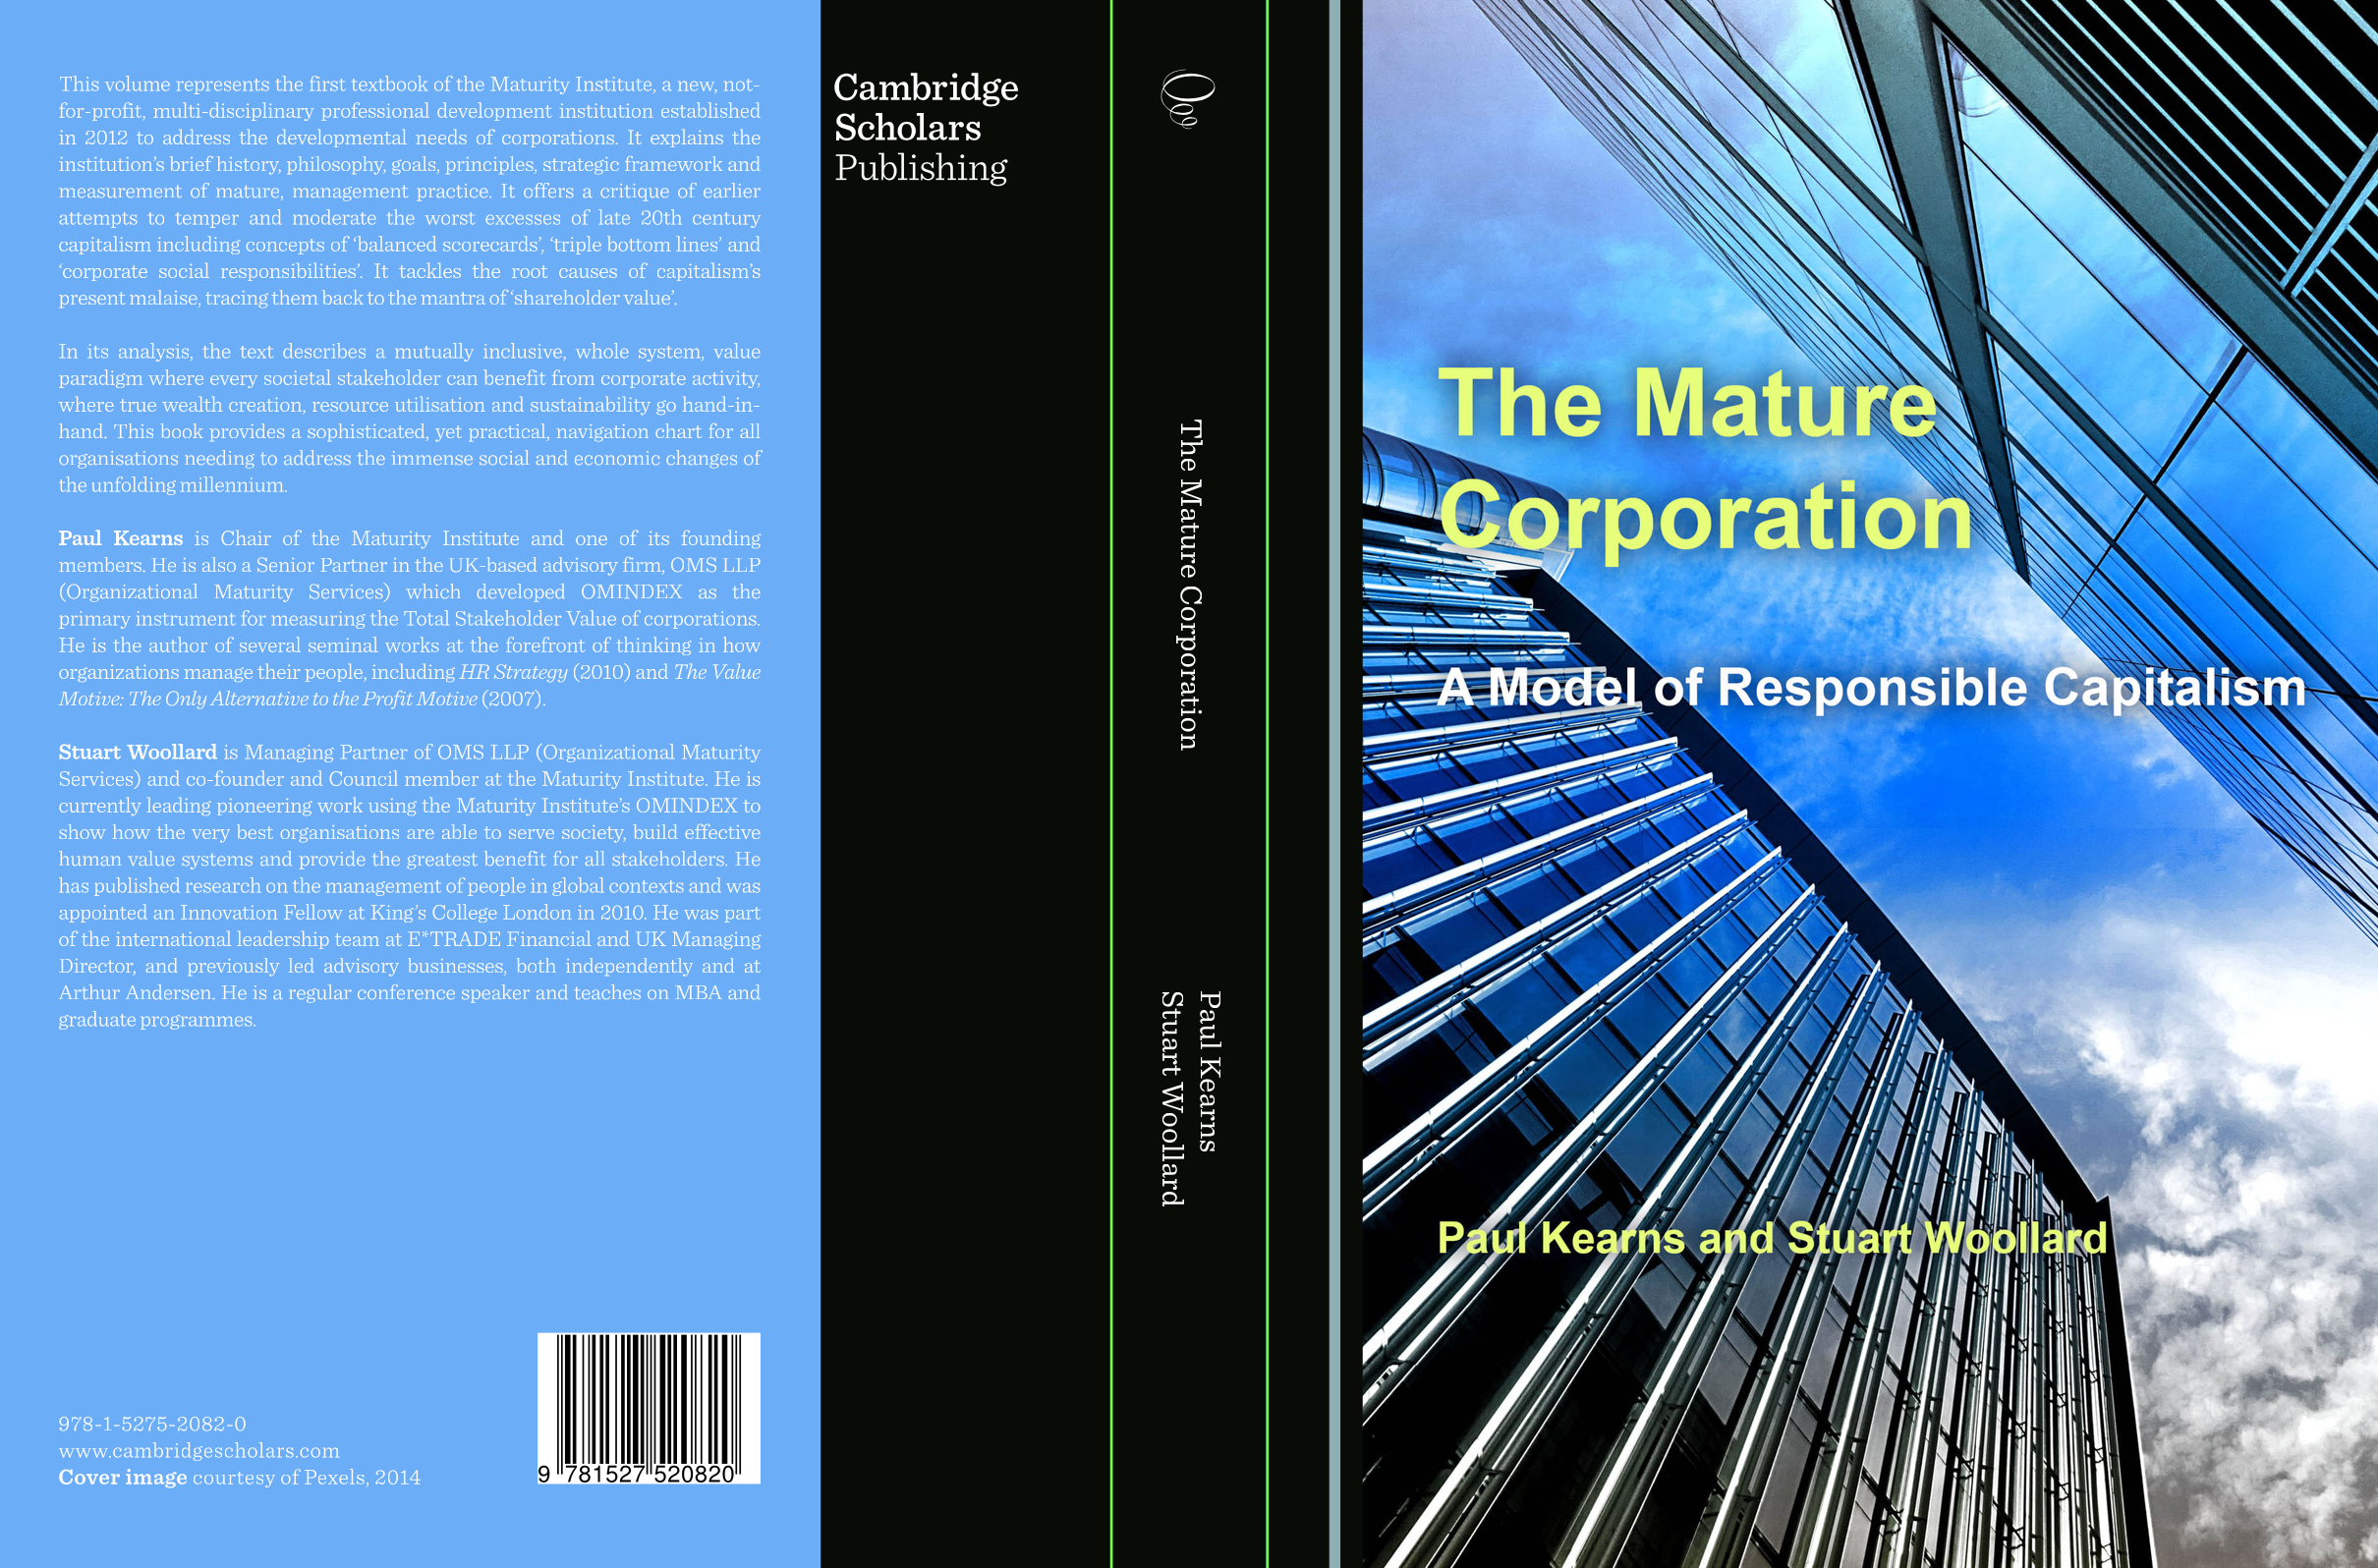 MI's first textbook: The Mature Corporation – a Model of